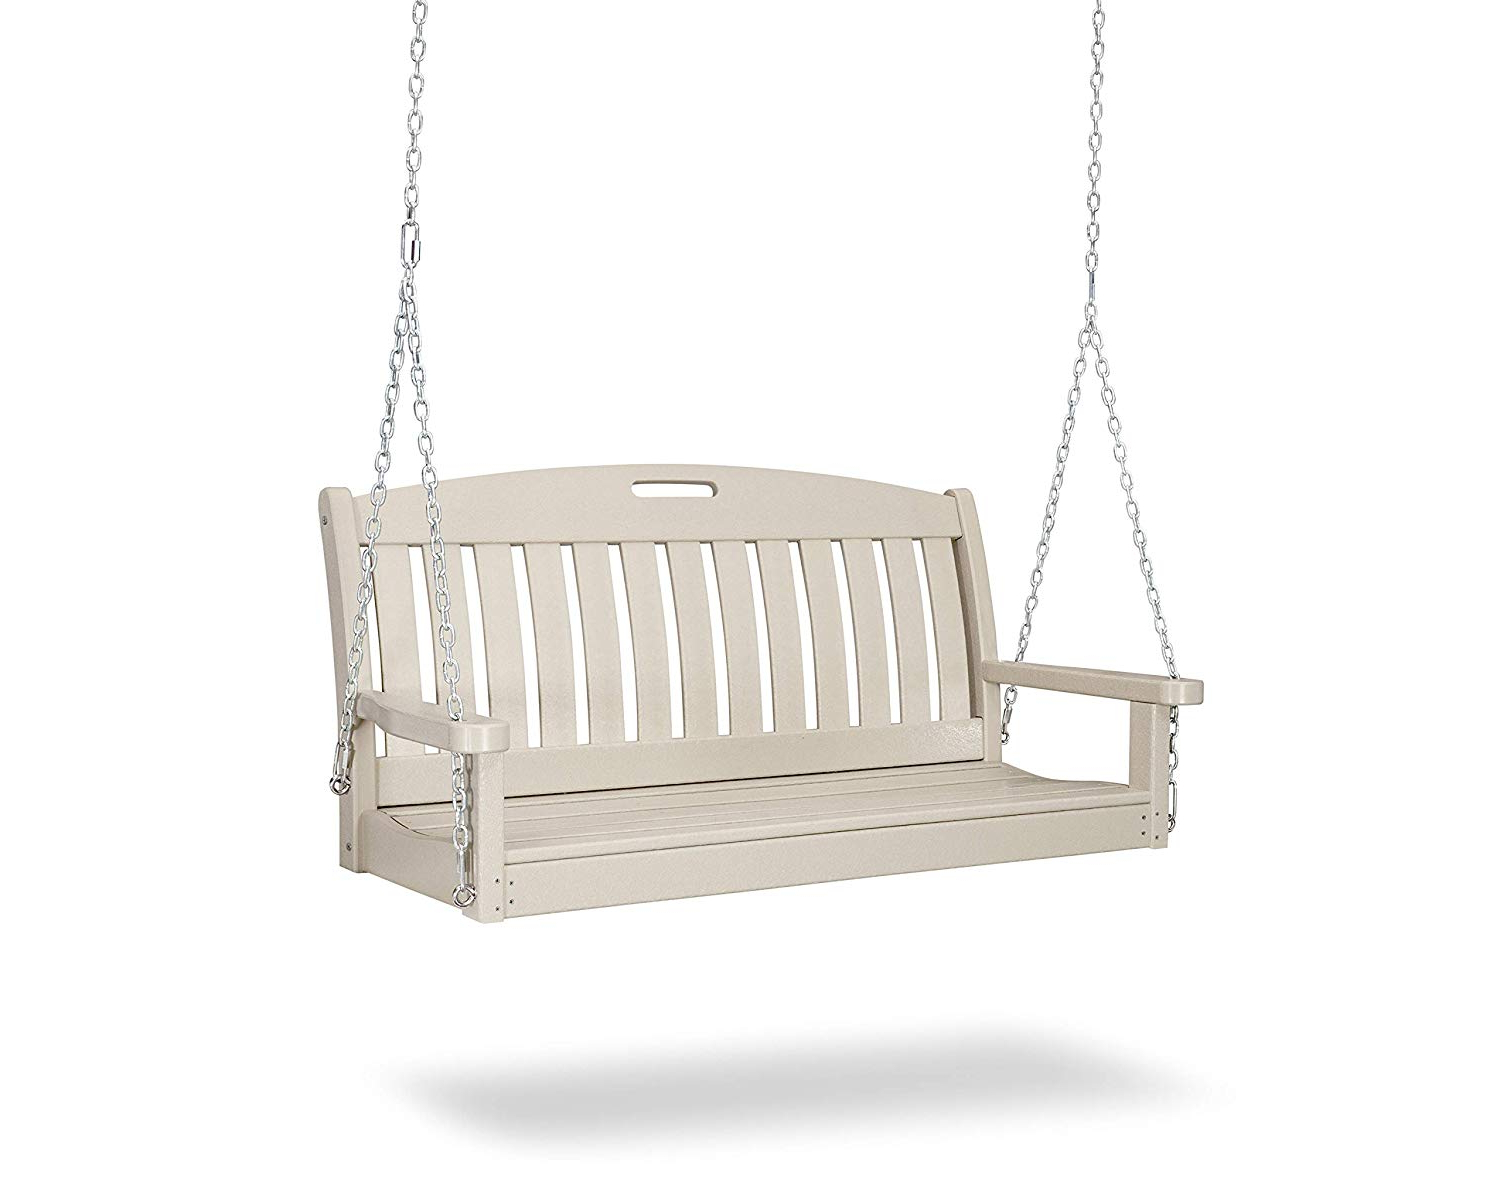 """Polywood Ns48sa Nautical 48"""" Swing, Sand In Most Recent Vineyard 2 Person Black Recycled Plastic Outdoor Swings (View 3 of 30)"""